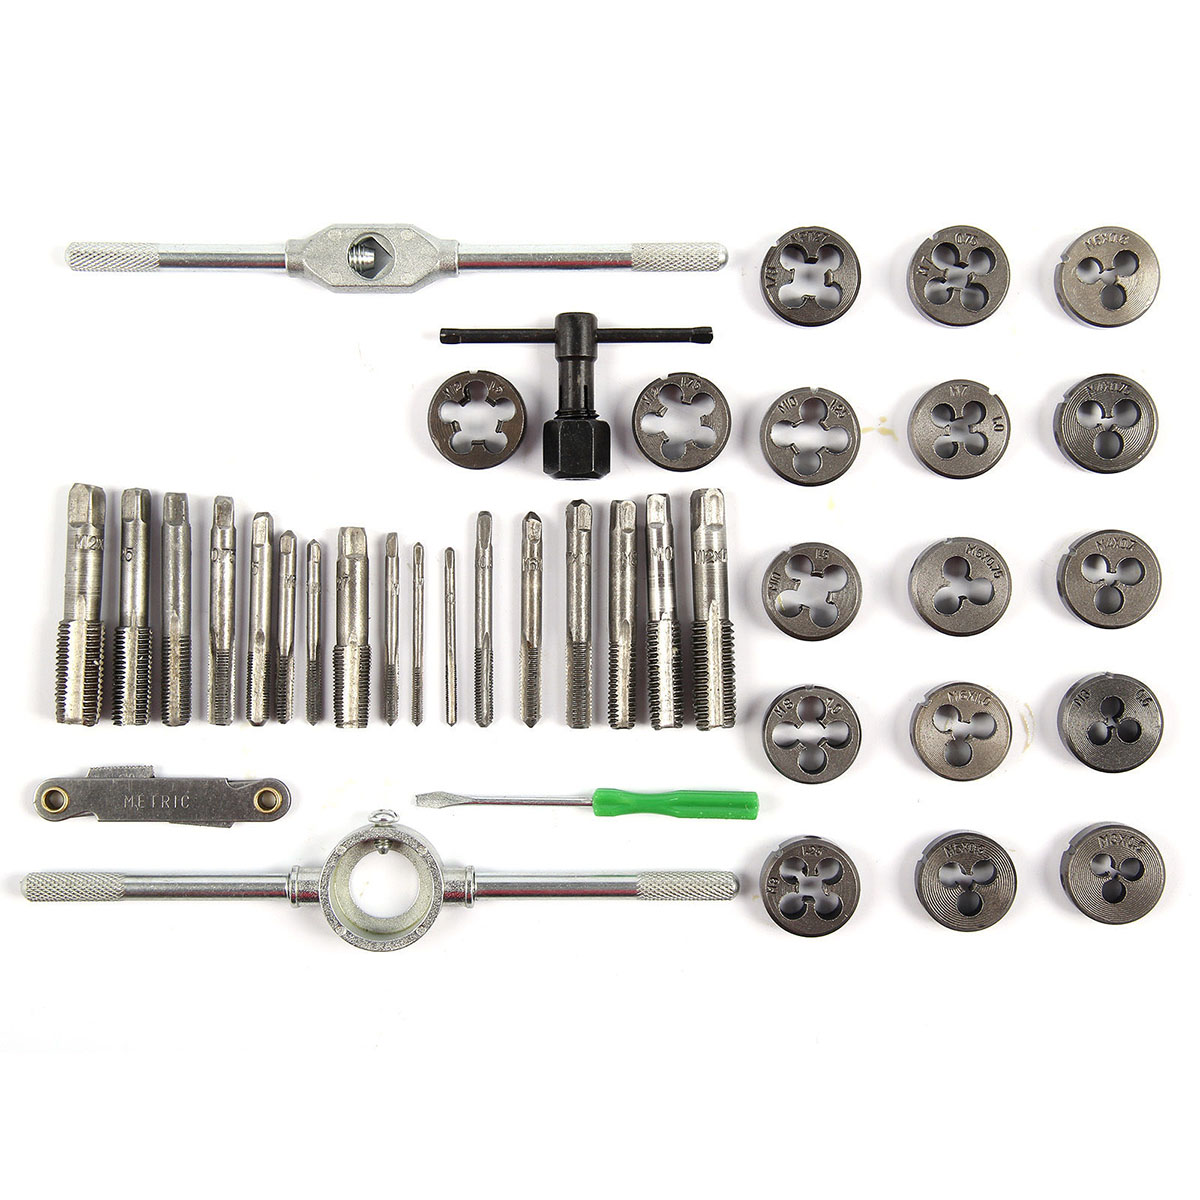 40 Pcs Adjustable Tap Die Wrench Threaded Cutting Set M3-M12 Pro Metric Plug Tap Threaded Cutters Tool40 Pcs Adjustable Tap Die Wrench Threaded Cutting Set M3-M12 Pro Metric Plug Tap Threaded Cutters Tool